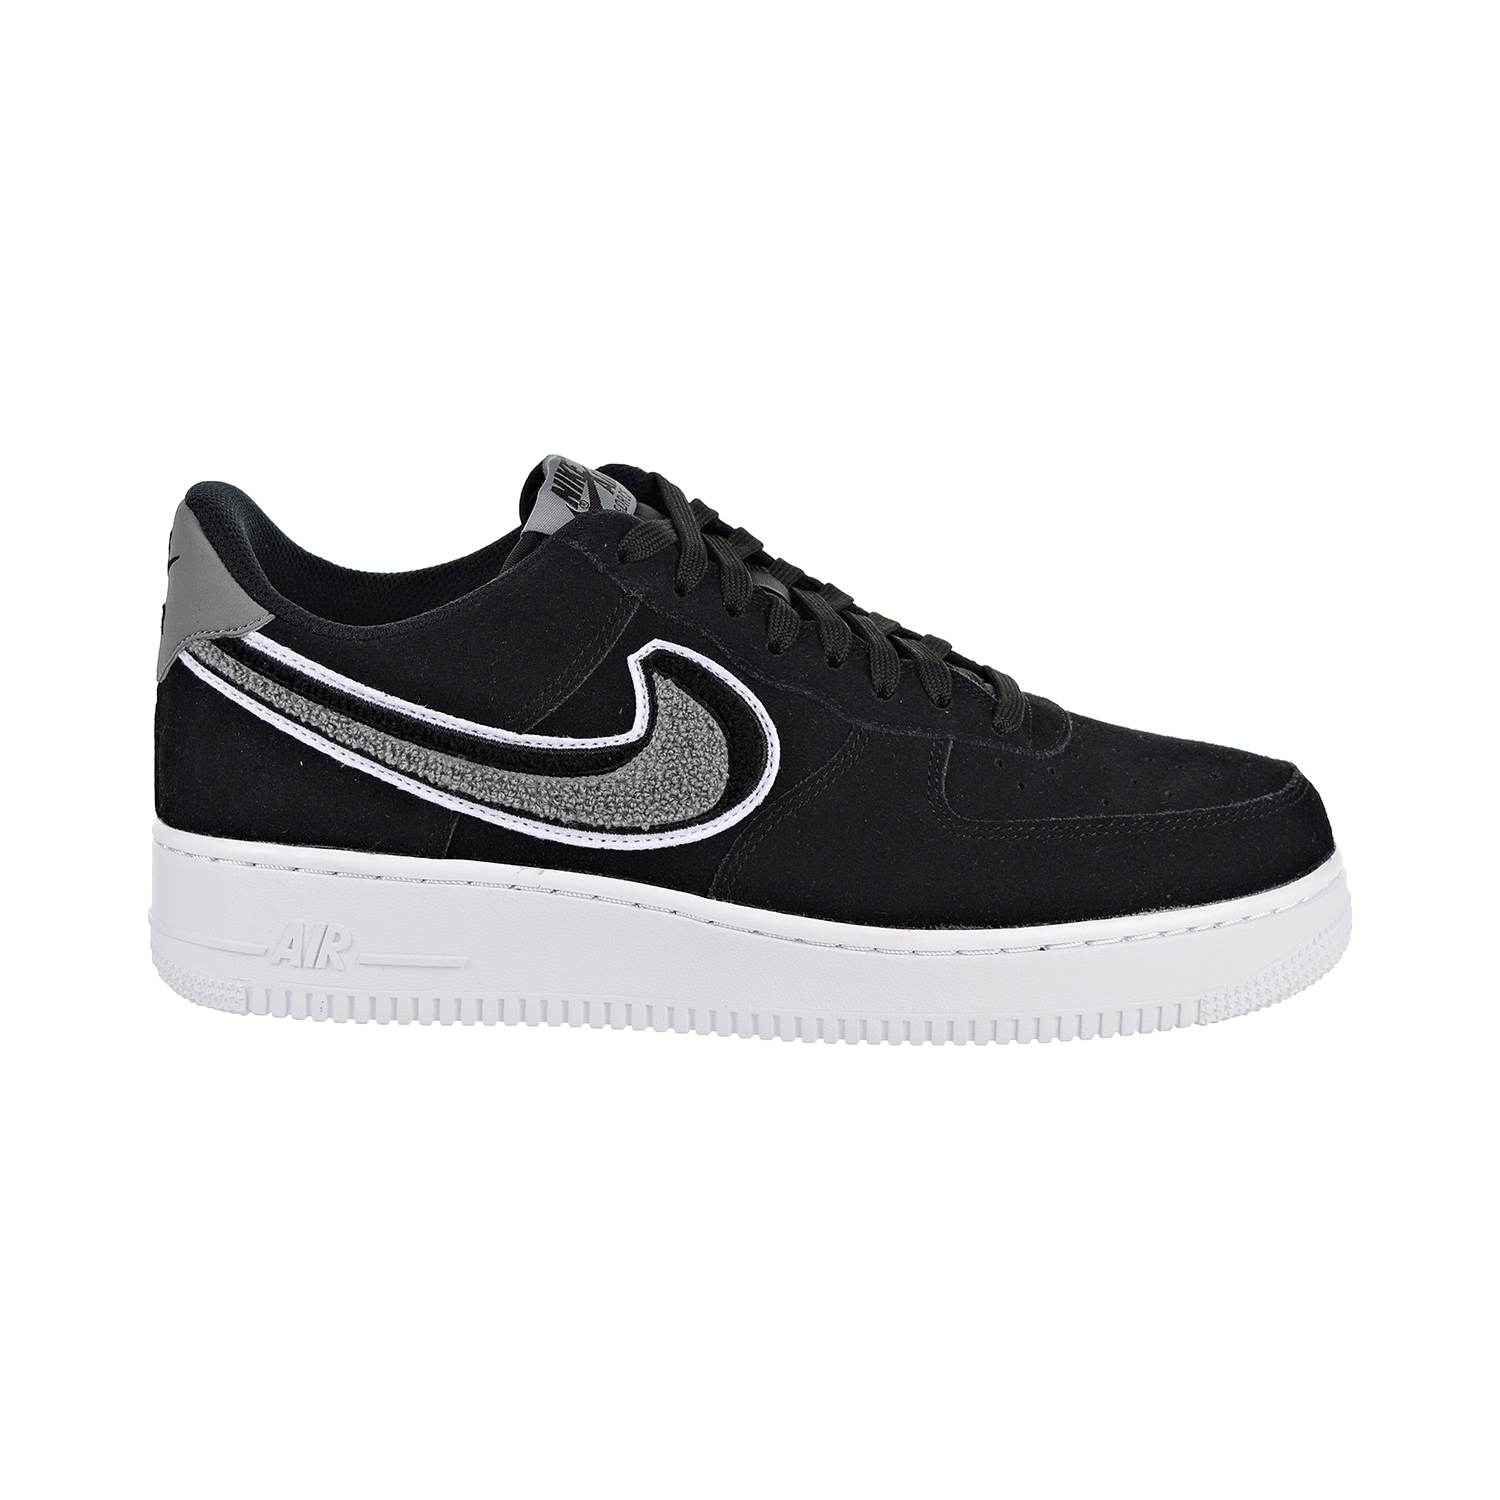 Details about Nike Air Force 1 Low 07 LV8 Men's Shoes Black Cool Grey White 823511 014